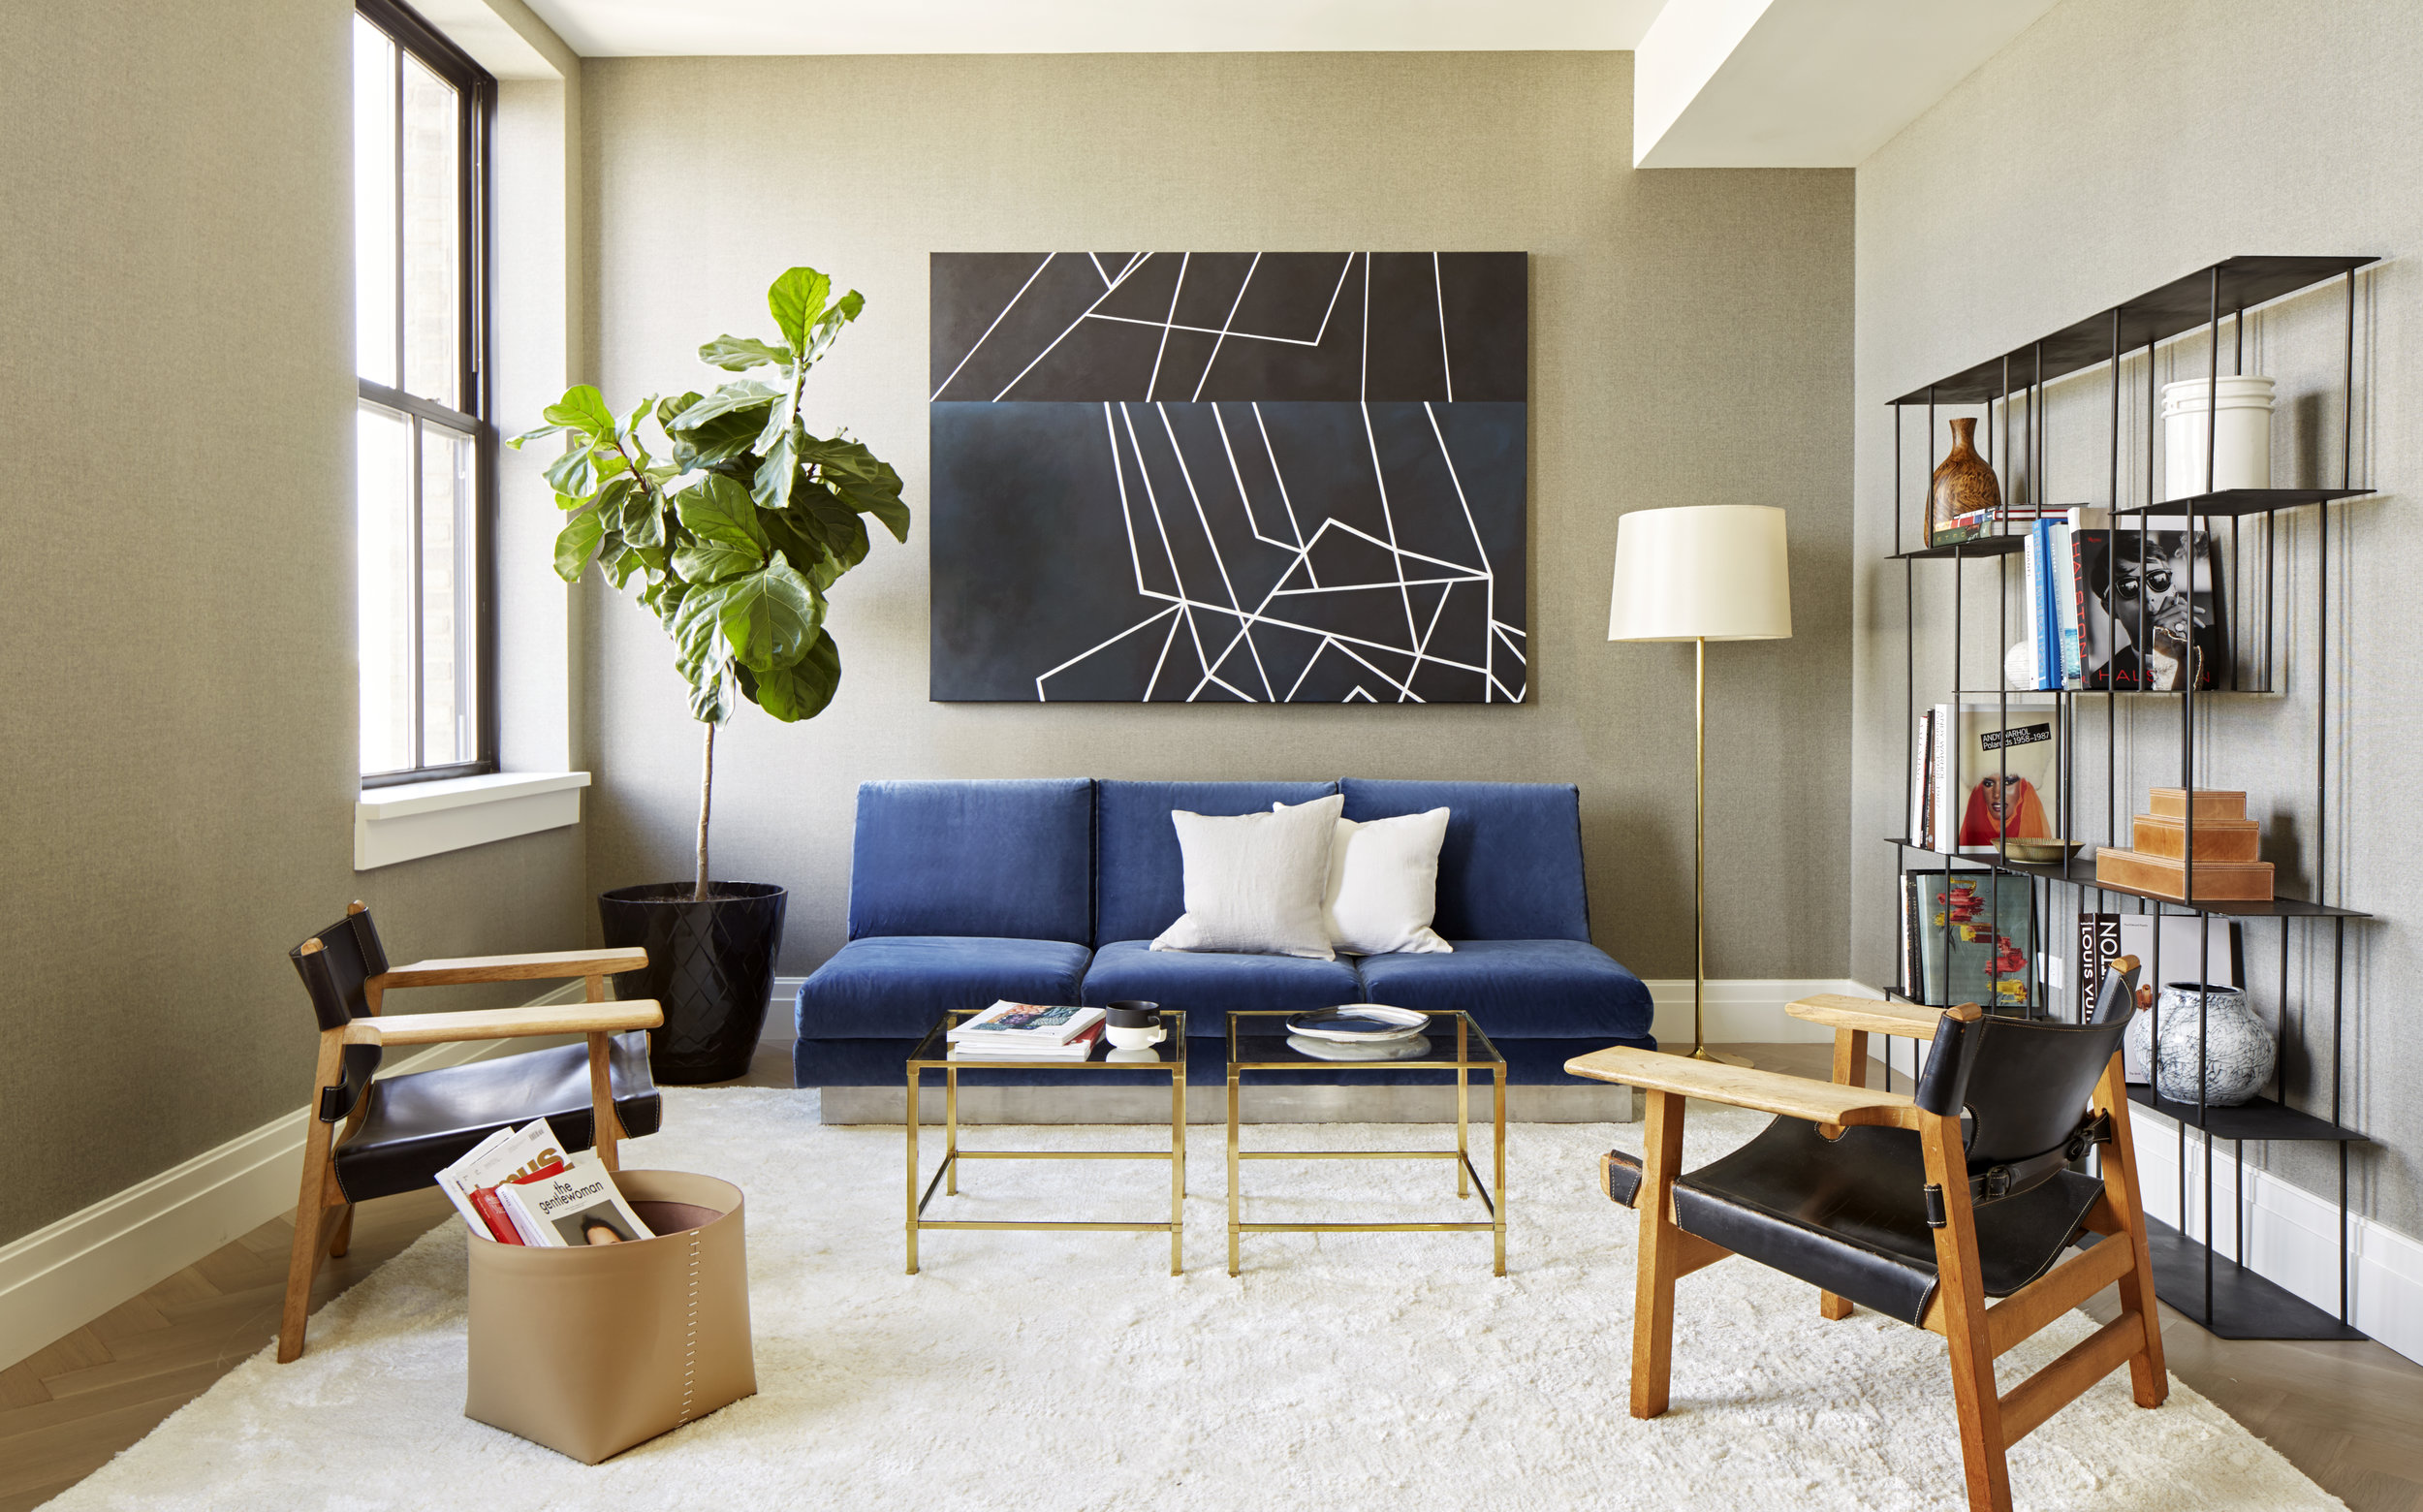 In harmony with the color choice, placing the sofa centered to the room creates a baseline for the rest of this sophisticated living space in TriBeCa.